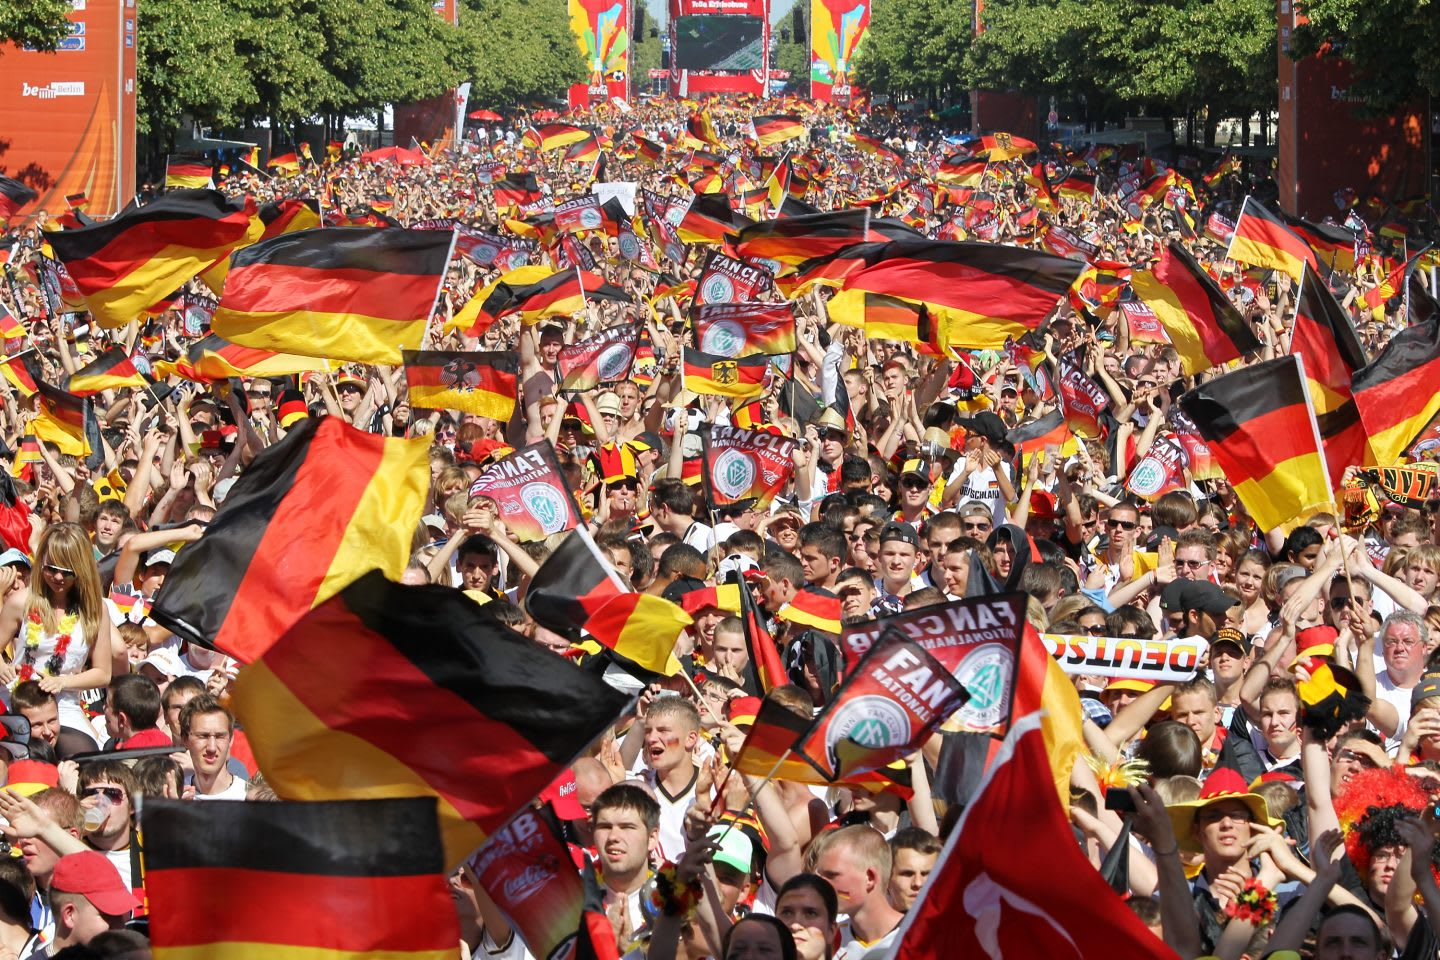 Germany fans watch live viewing in Berlin